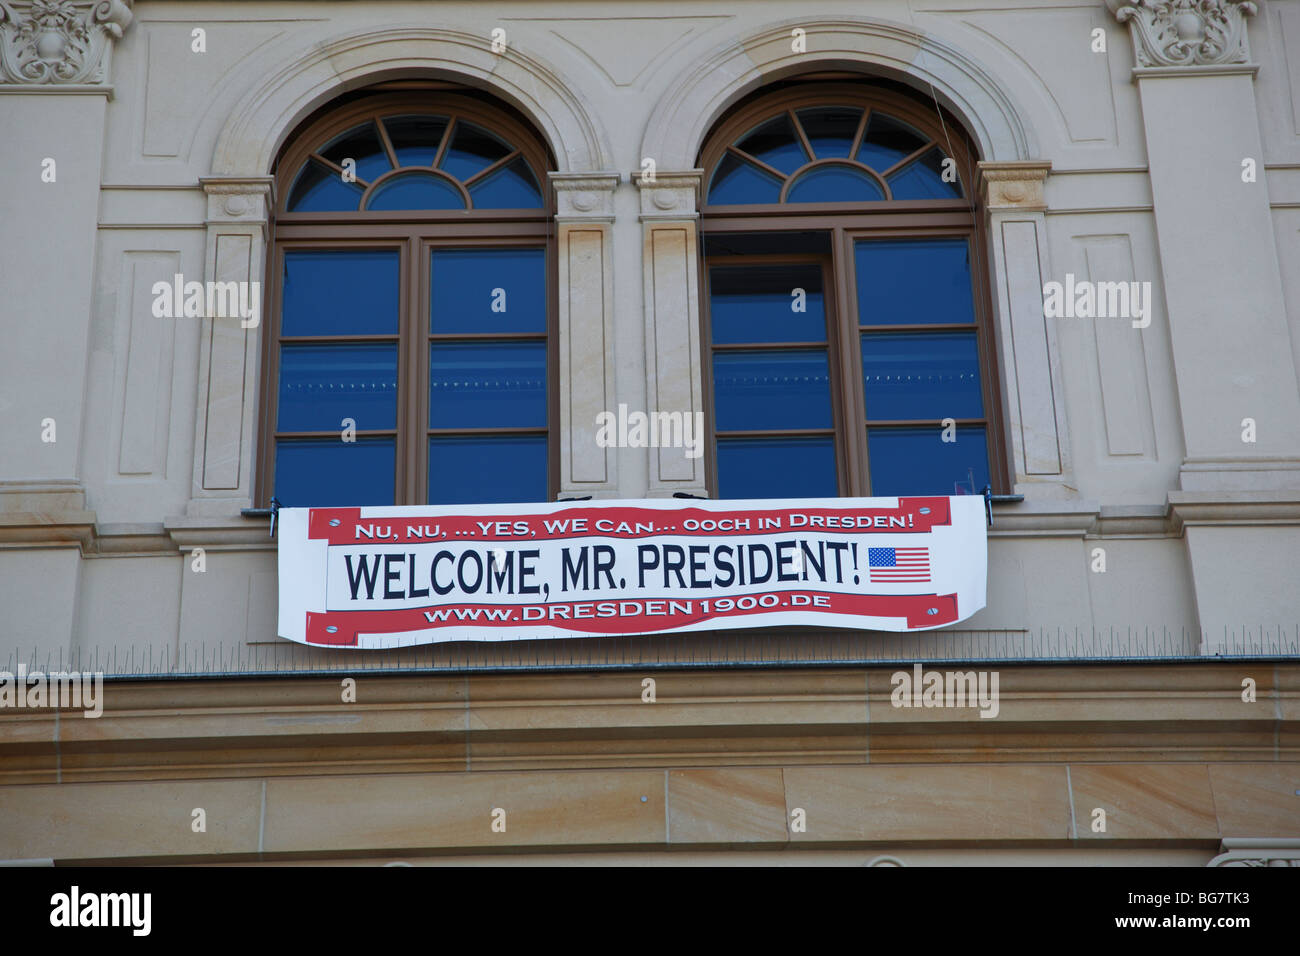 Germany, Saxony, Dresden, United States Presidential Visit, Welcome Banner on Building - Stock Image